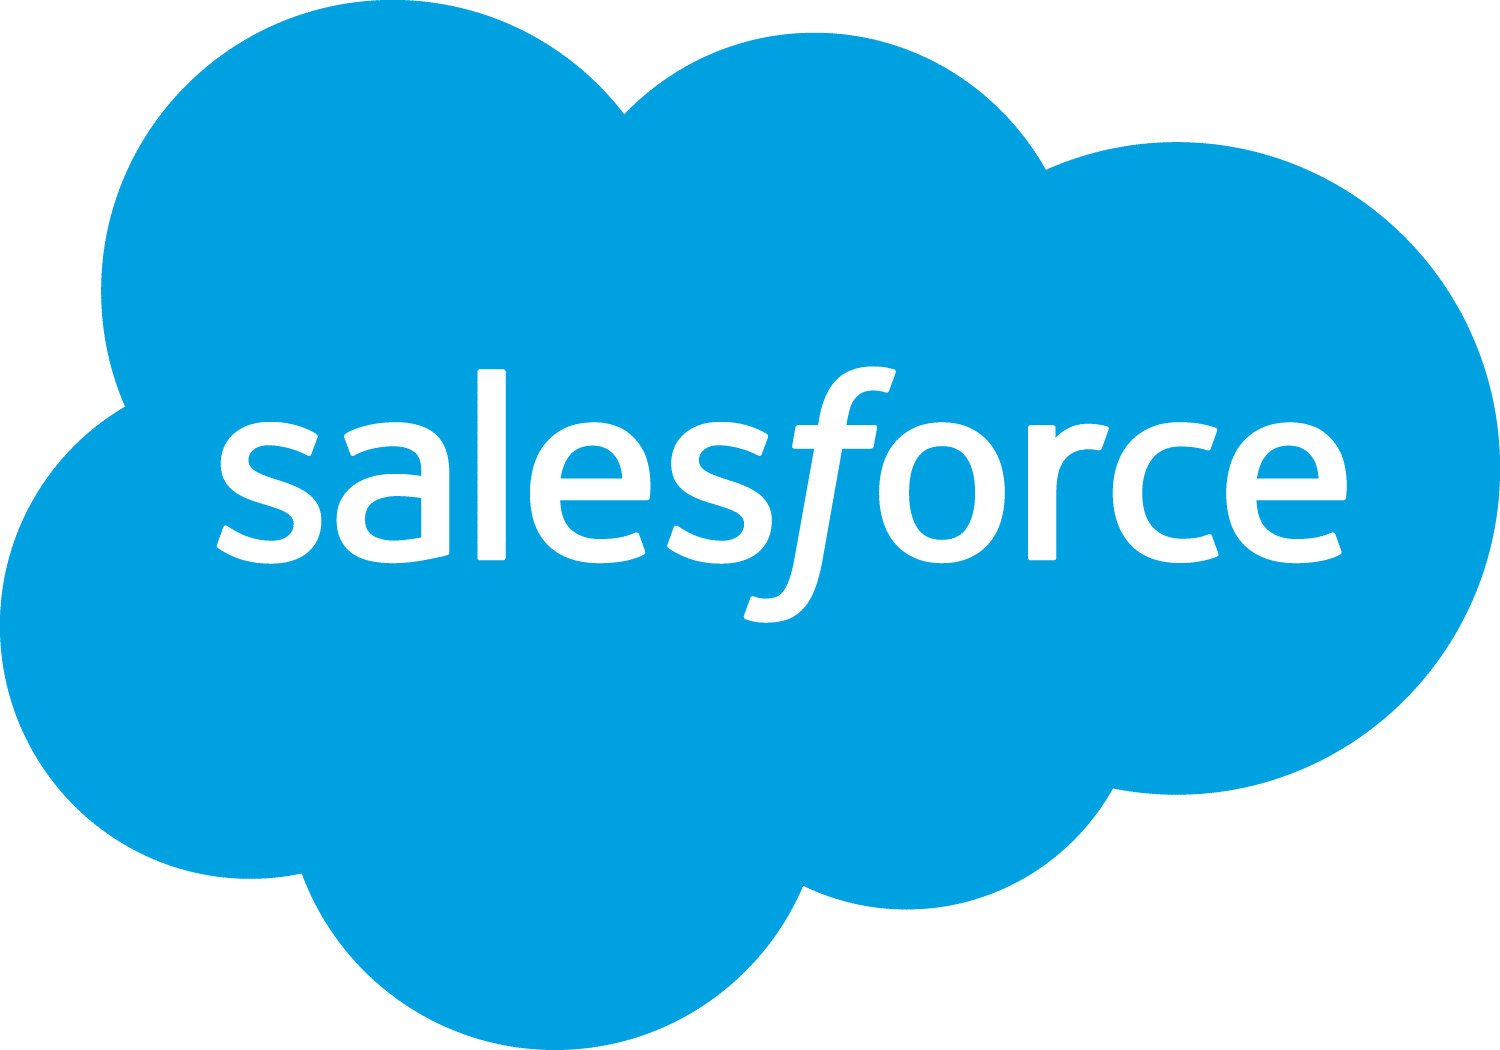 salesforce_supporting